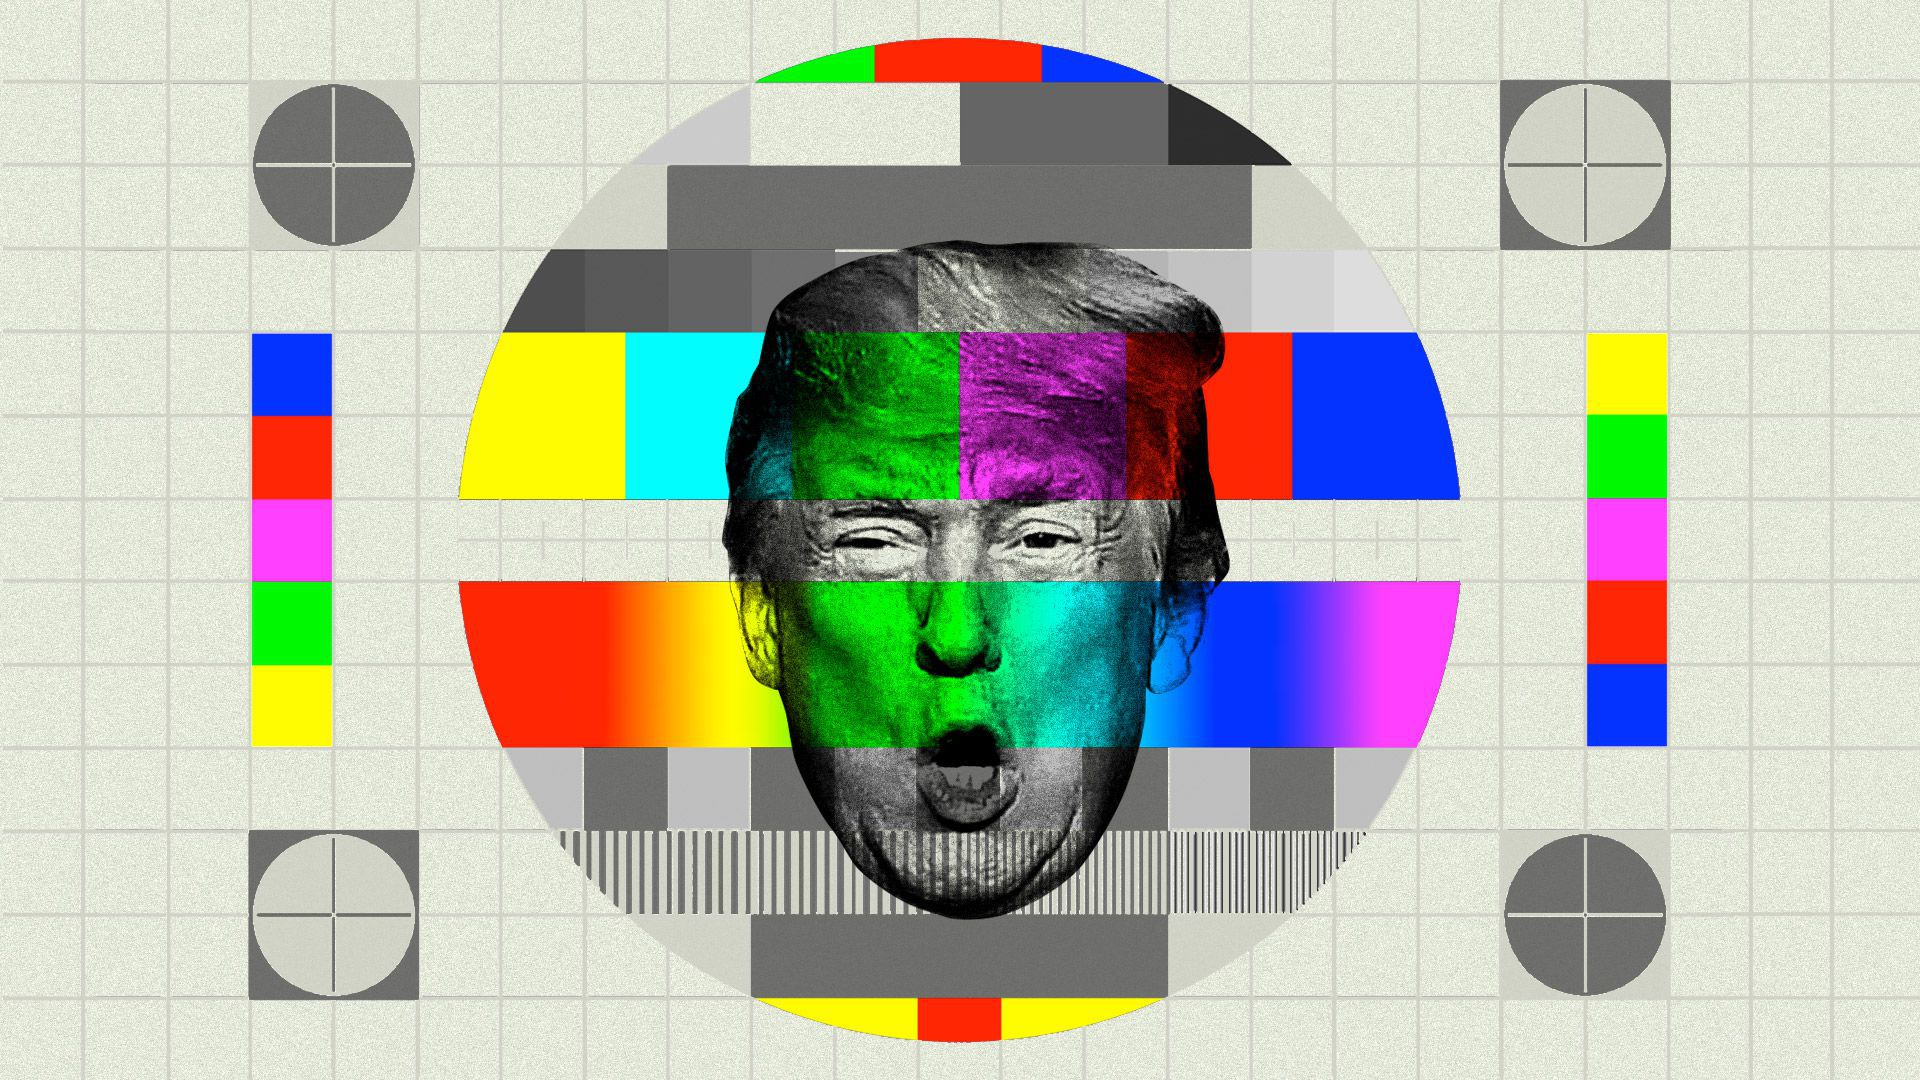 Trump illustration